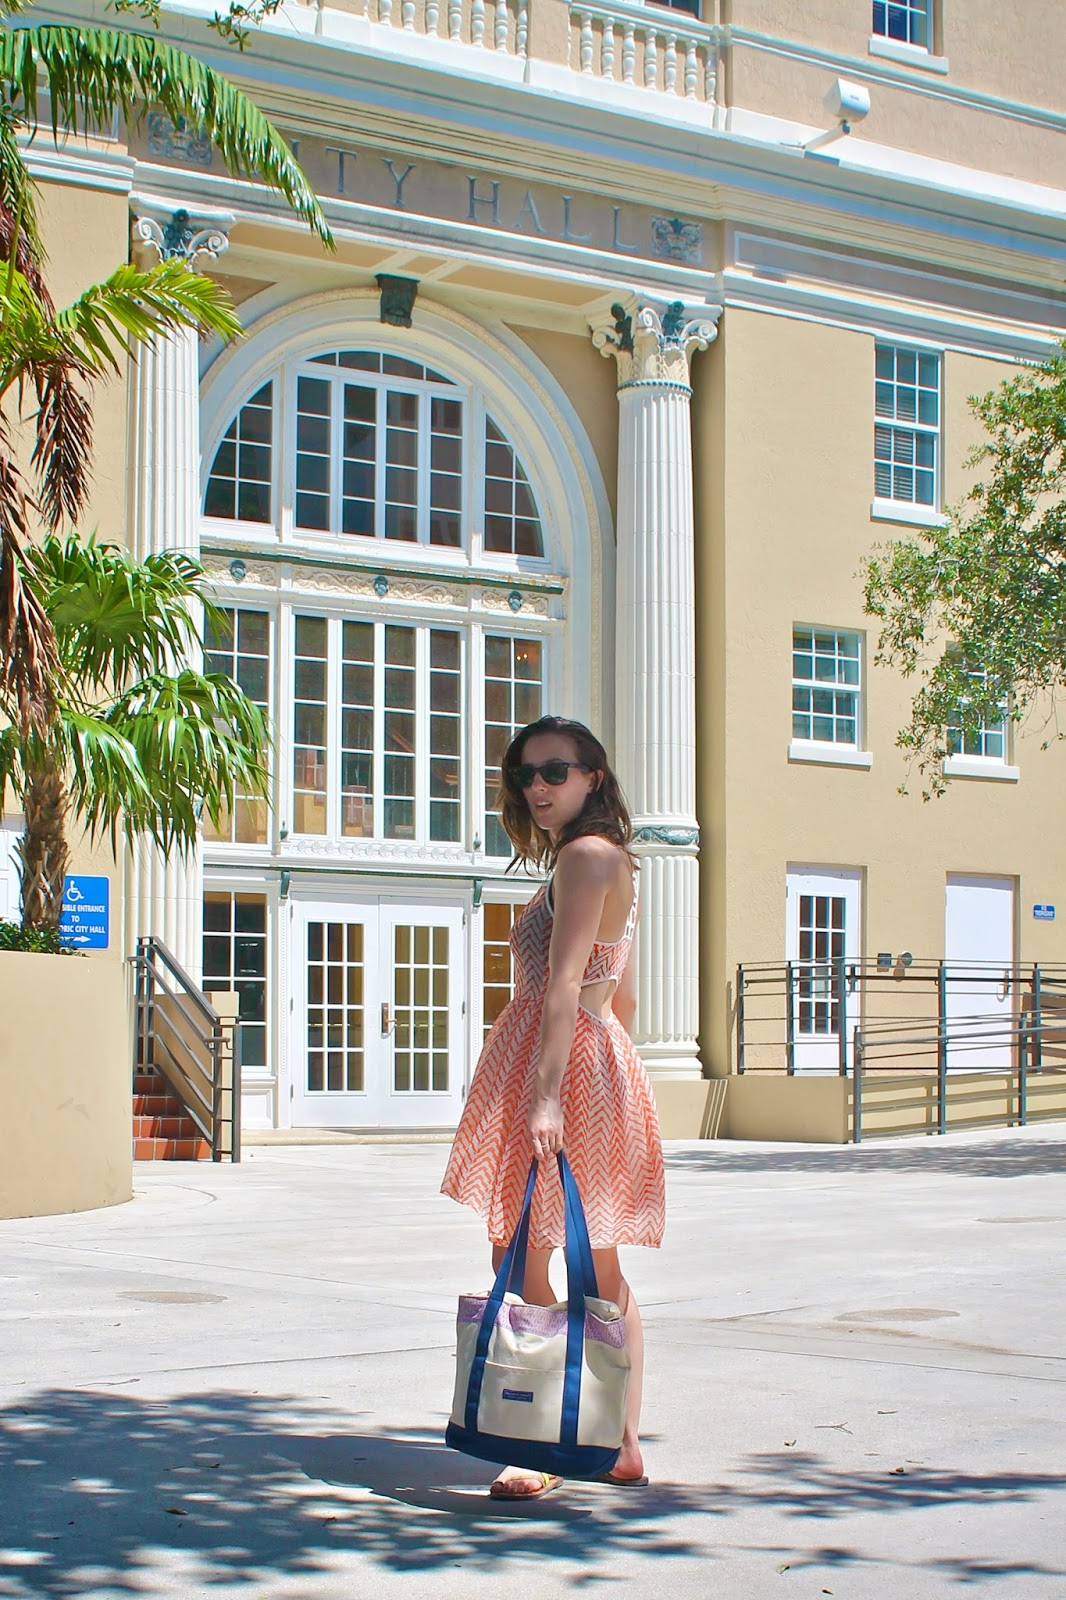 Vineyard Vines, target, ASOS, Ray-Ban, fashion, style, fashion blog, style blog, Miami fashion, ootd, look book, summer style